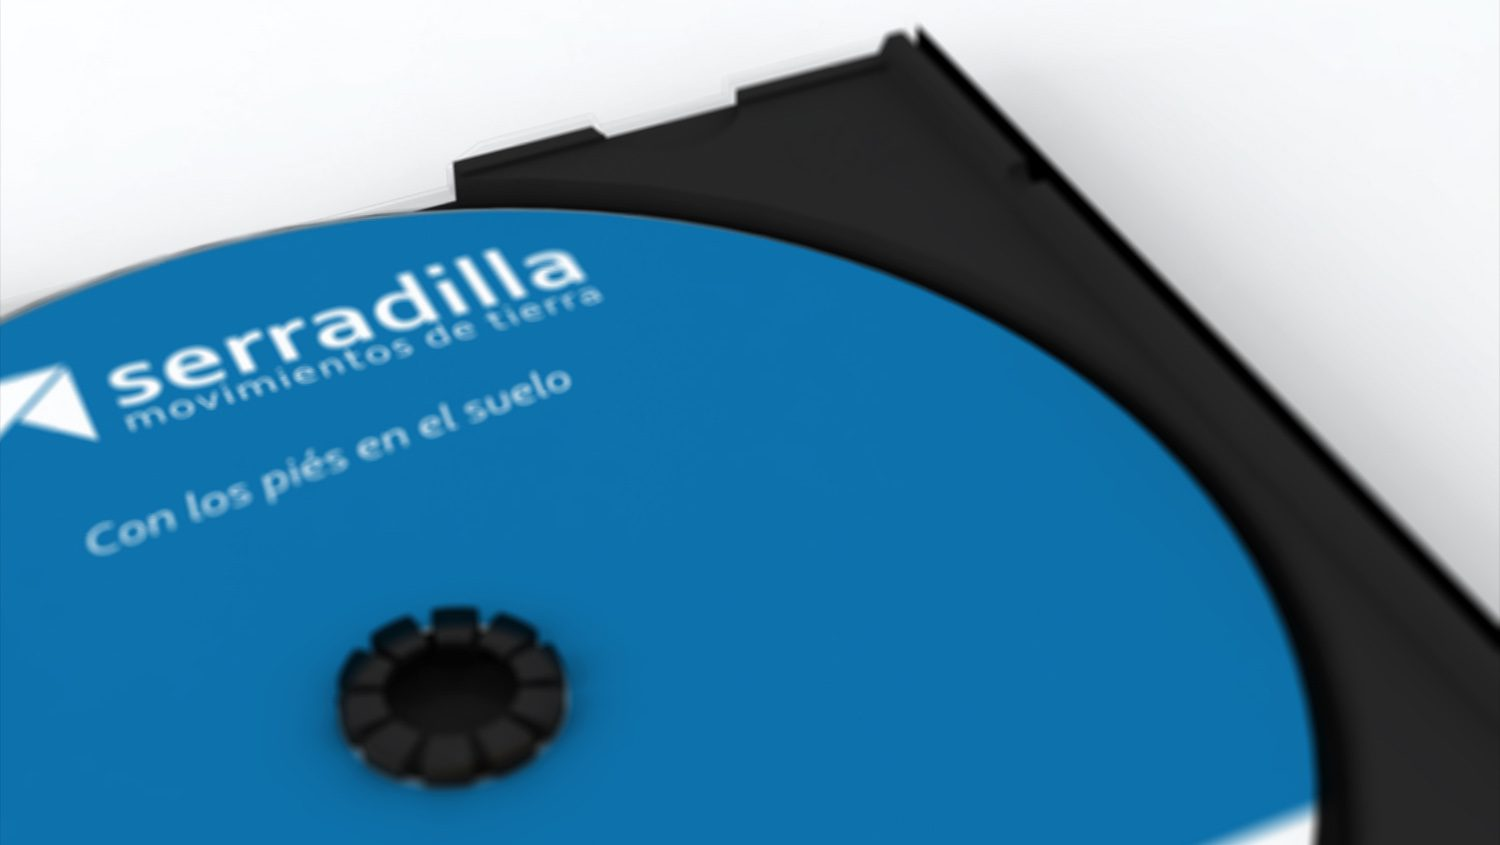 SERRADILLA-MDT-galleta-cd